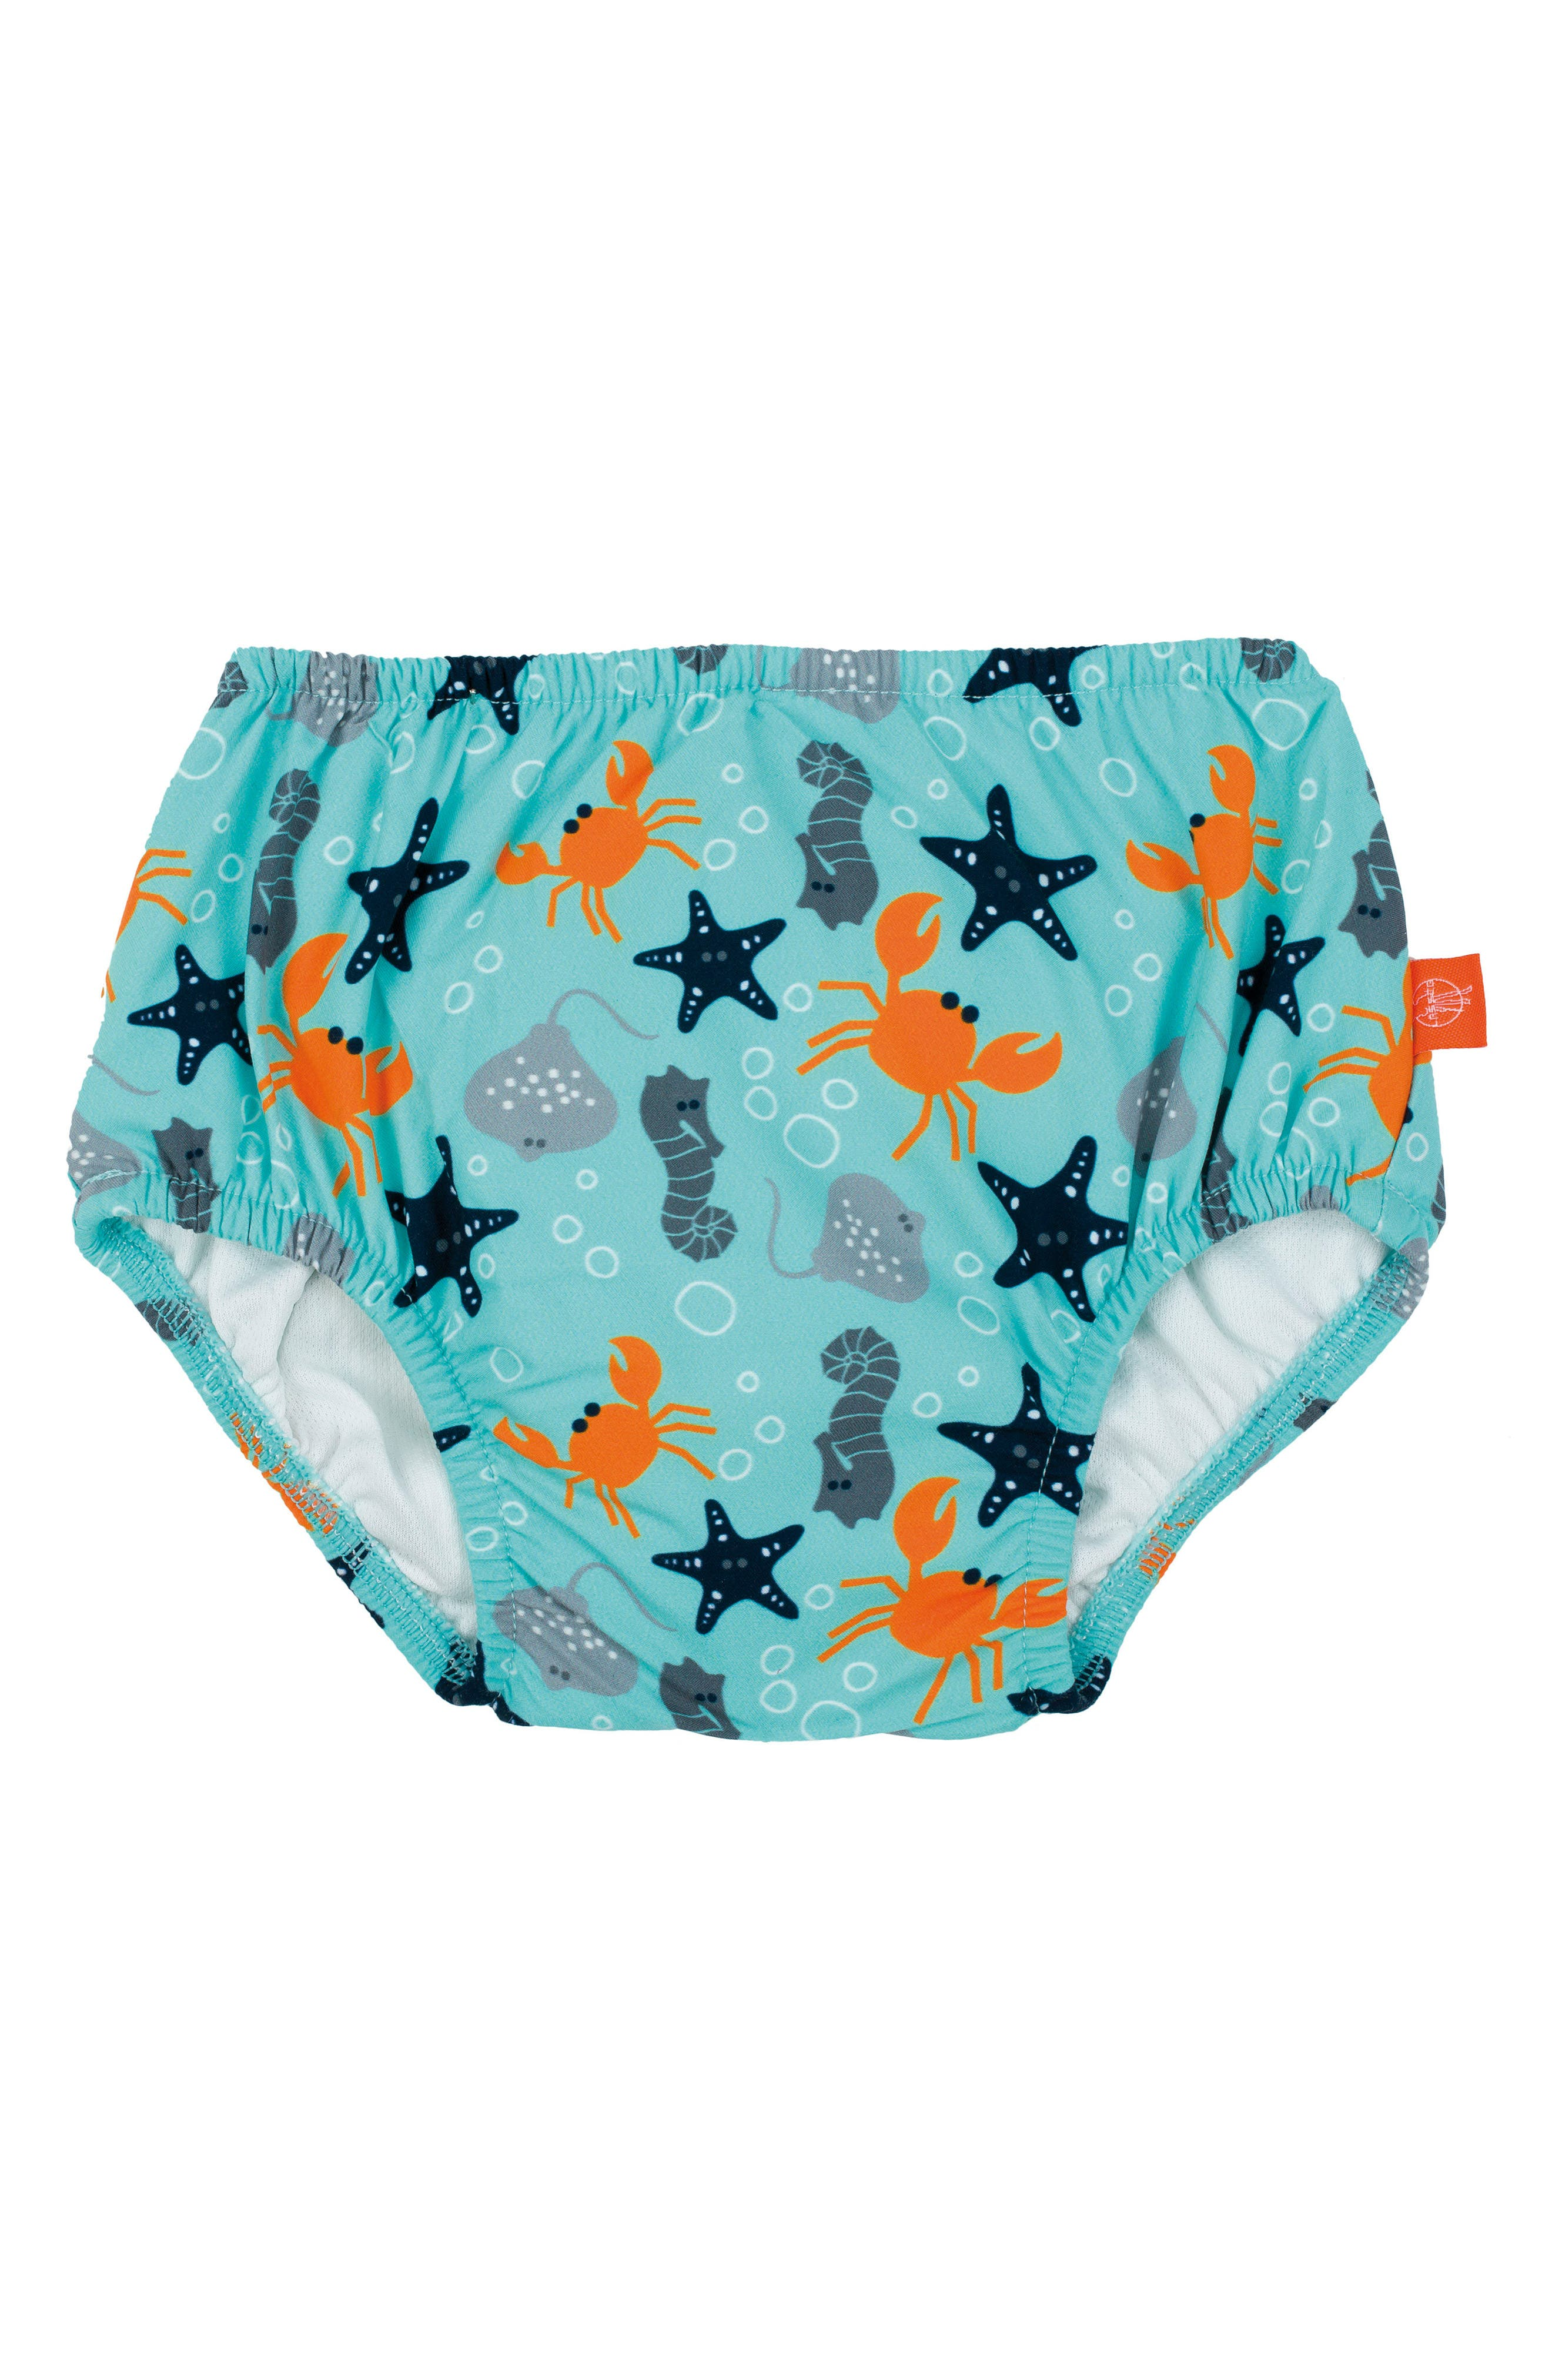 Star Fish Swim Diaper Cover,                         Main,                         color, Light Blue Orange Grey Navy